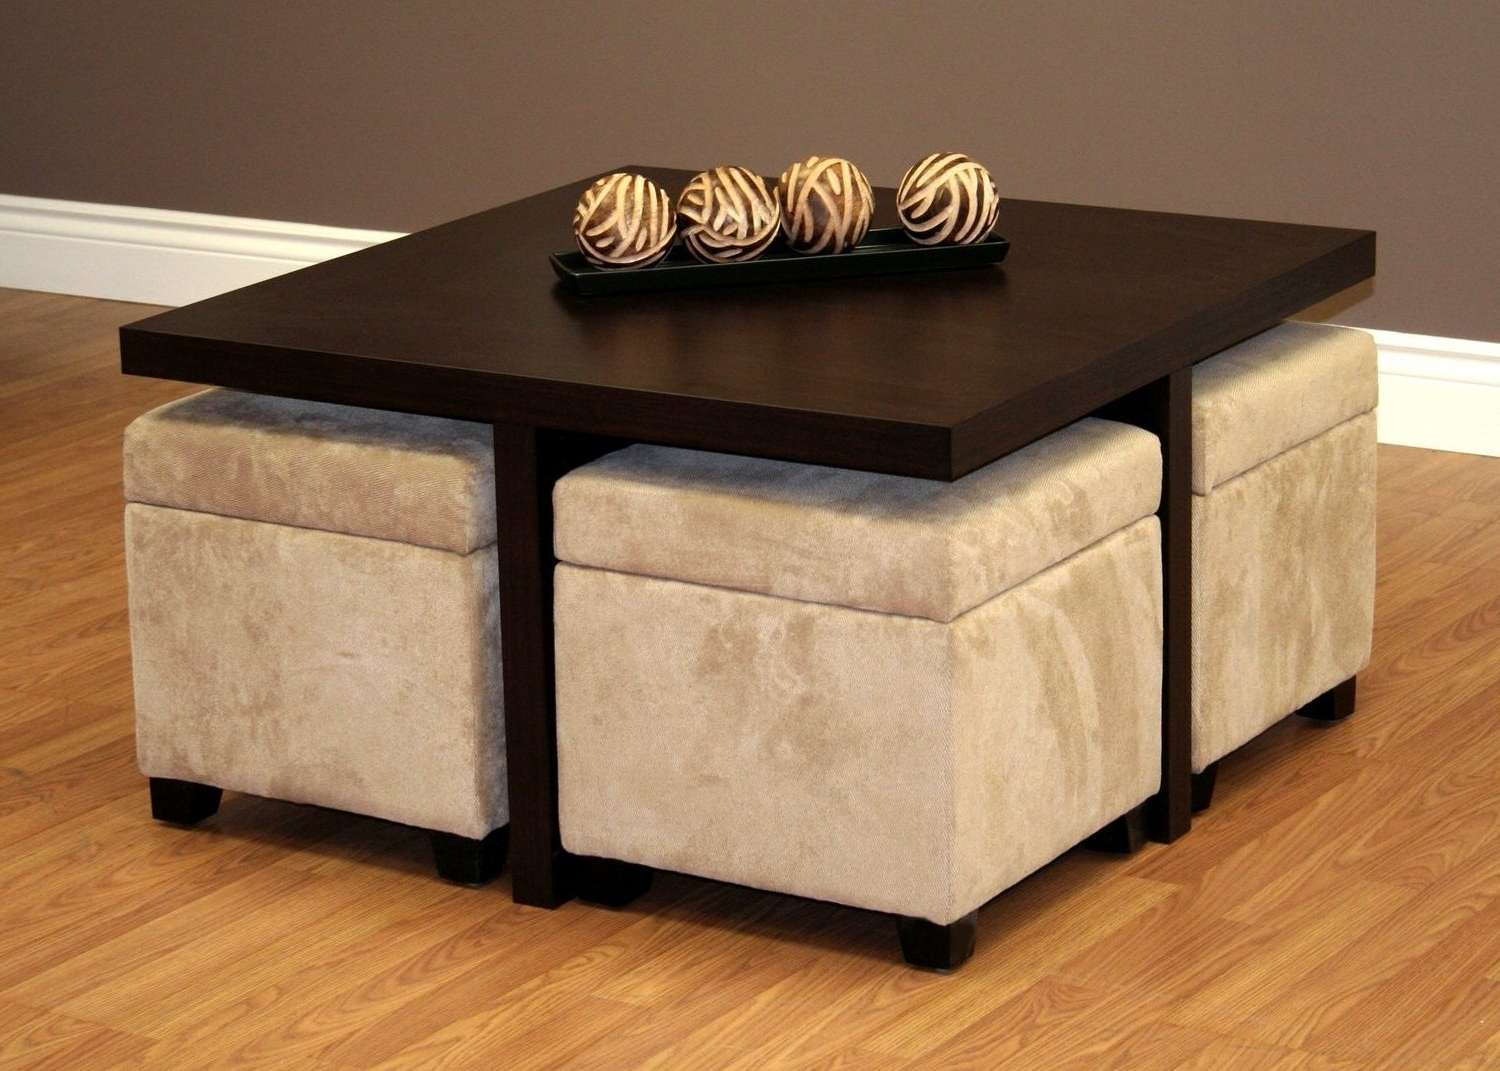 Things You Won't Miss Out If You Attend Coffee Table With Stools With Regard To 2018 Coffee Table With Stools (View 17 of 20)